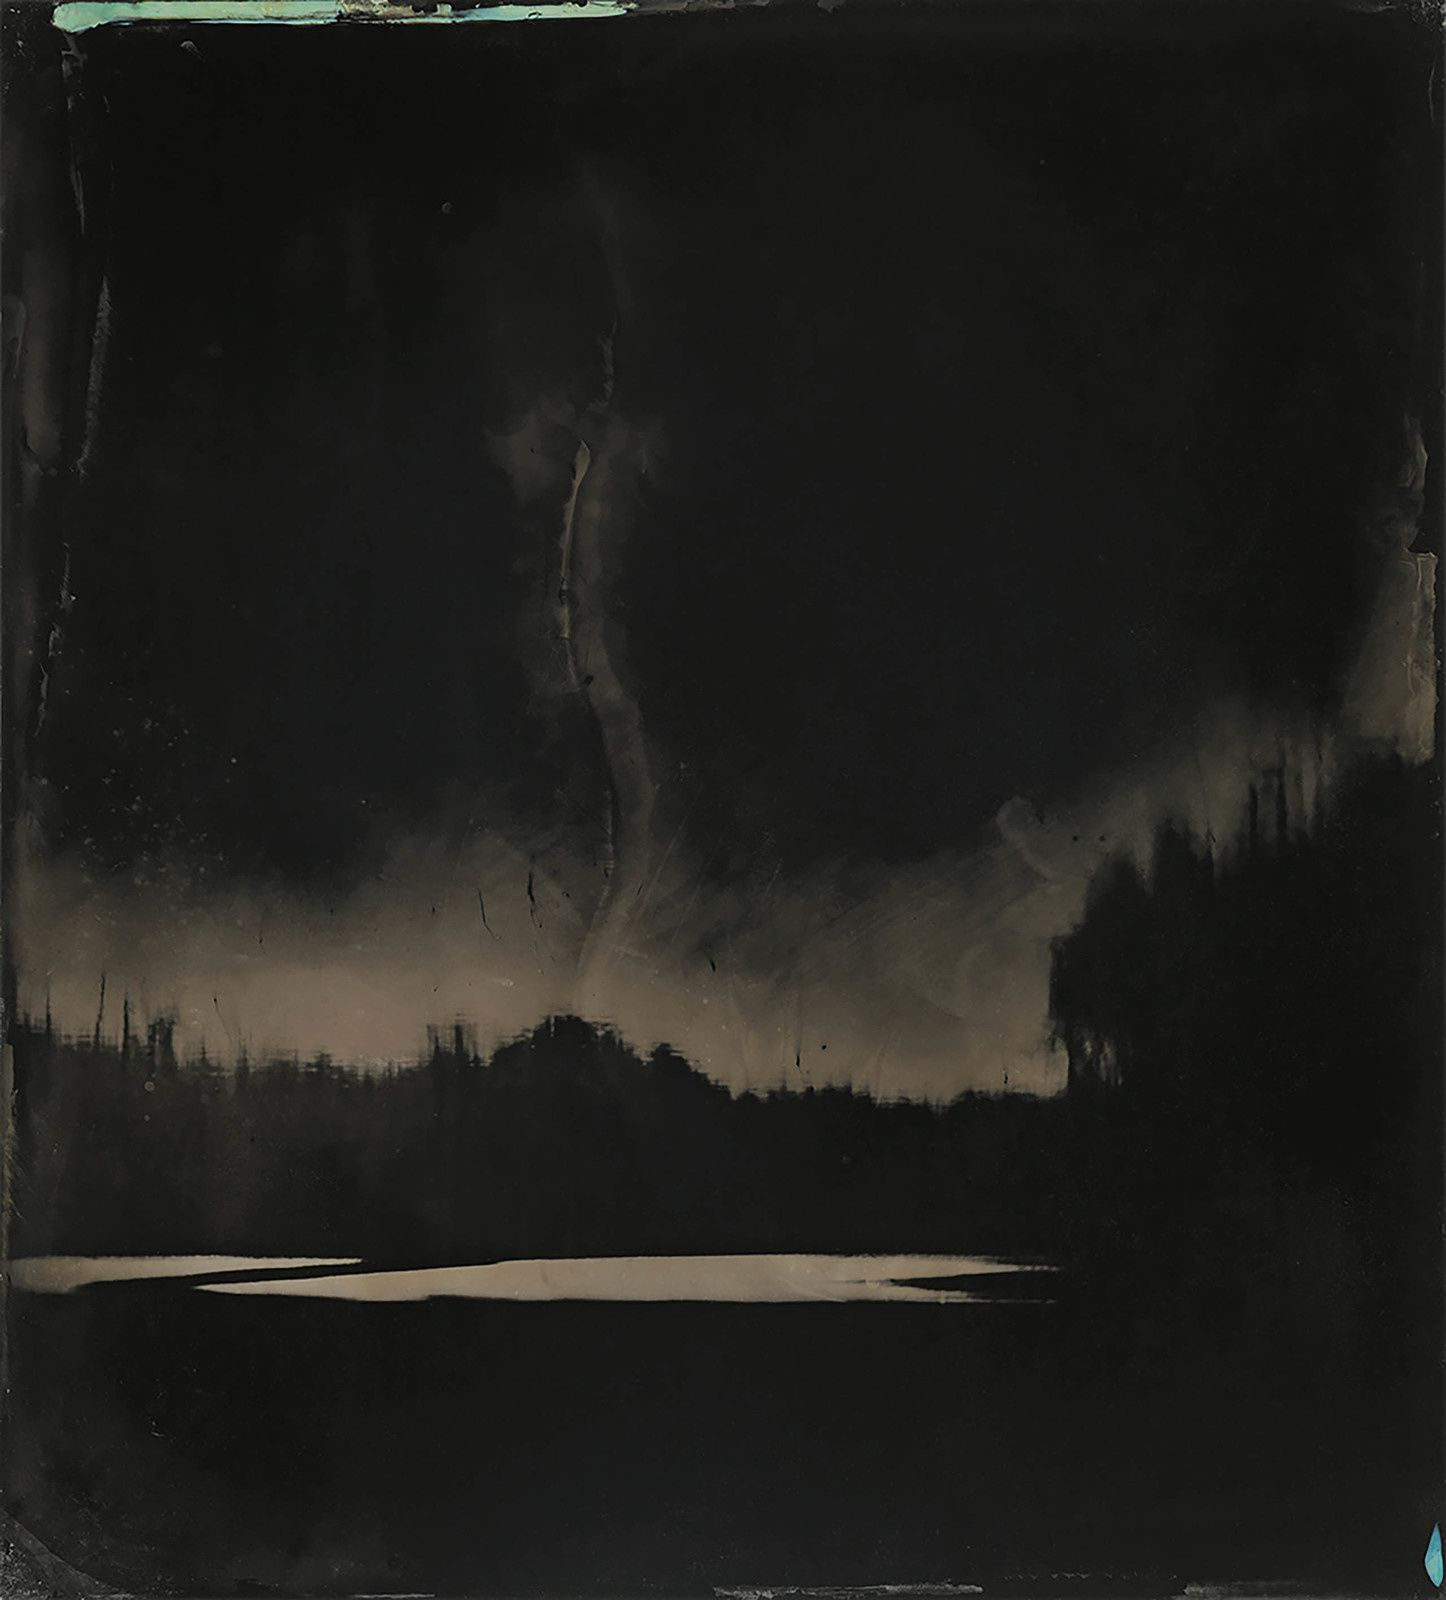 """Blackwater 9"", 2008 - 2012 de Sally MANN Tintype. Collection of the artist © Sally Mann"